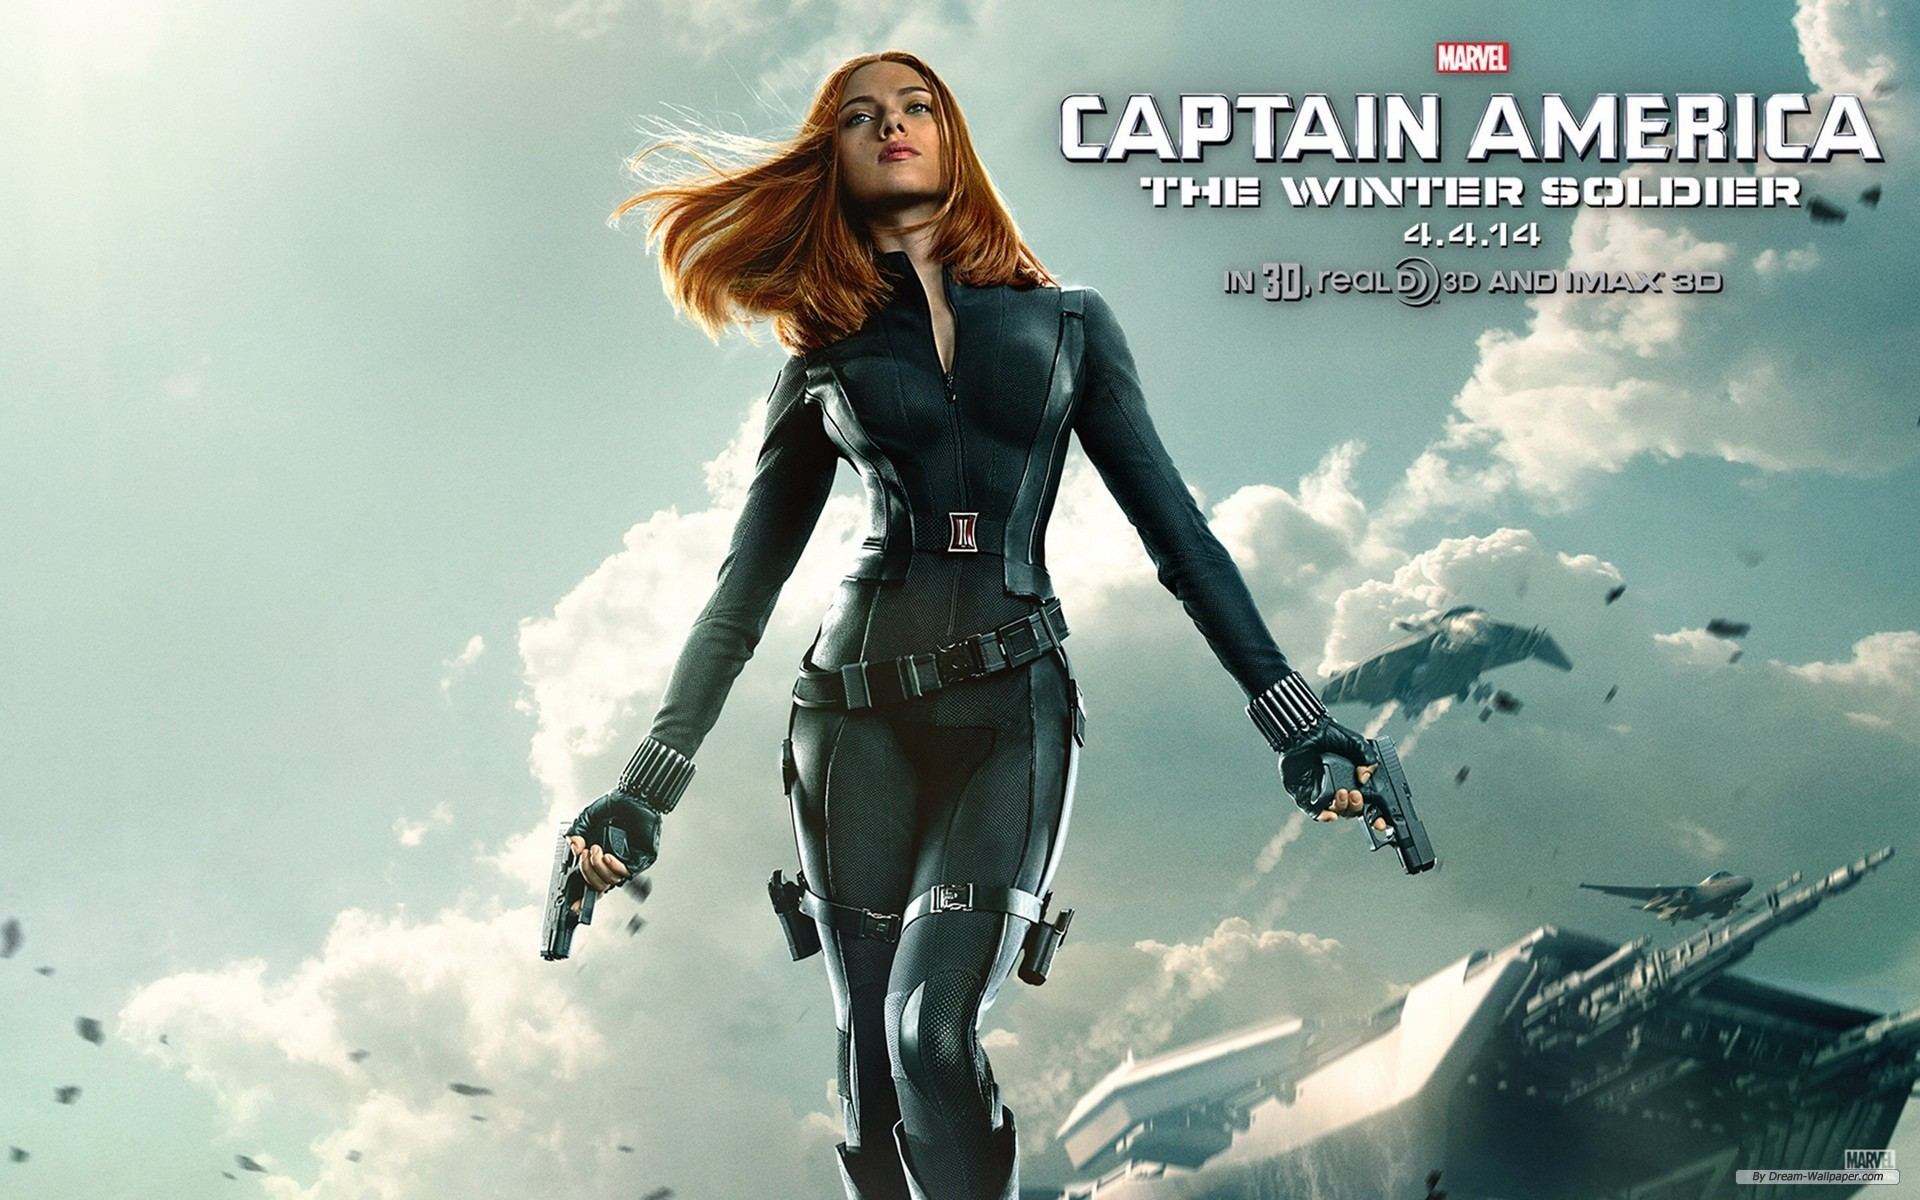 1920x1200 Free Movie wallpaper - Captain America The Winter Soldier wallpaper -   wallpaper - Index 8